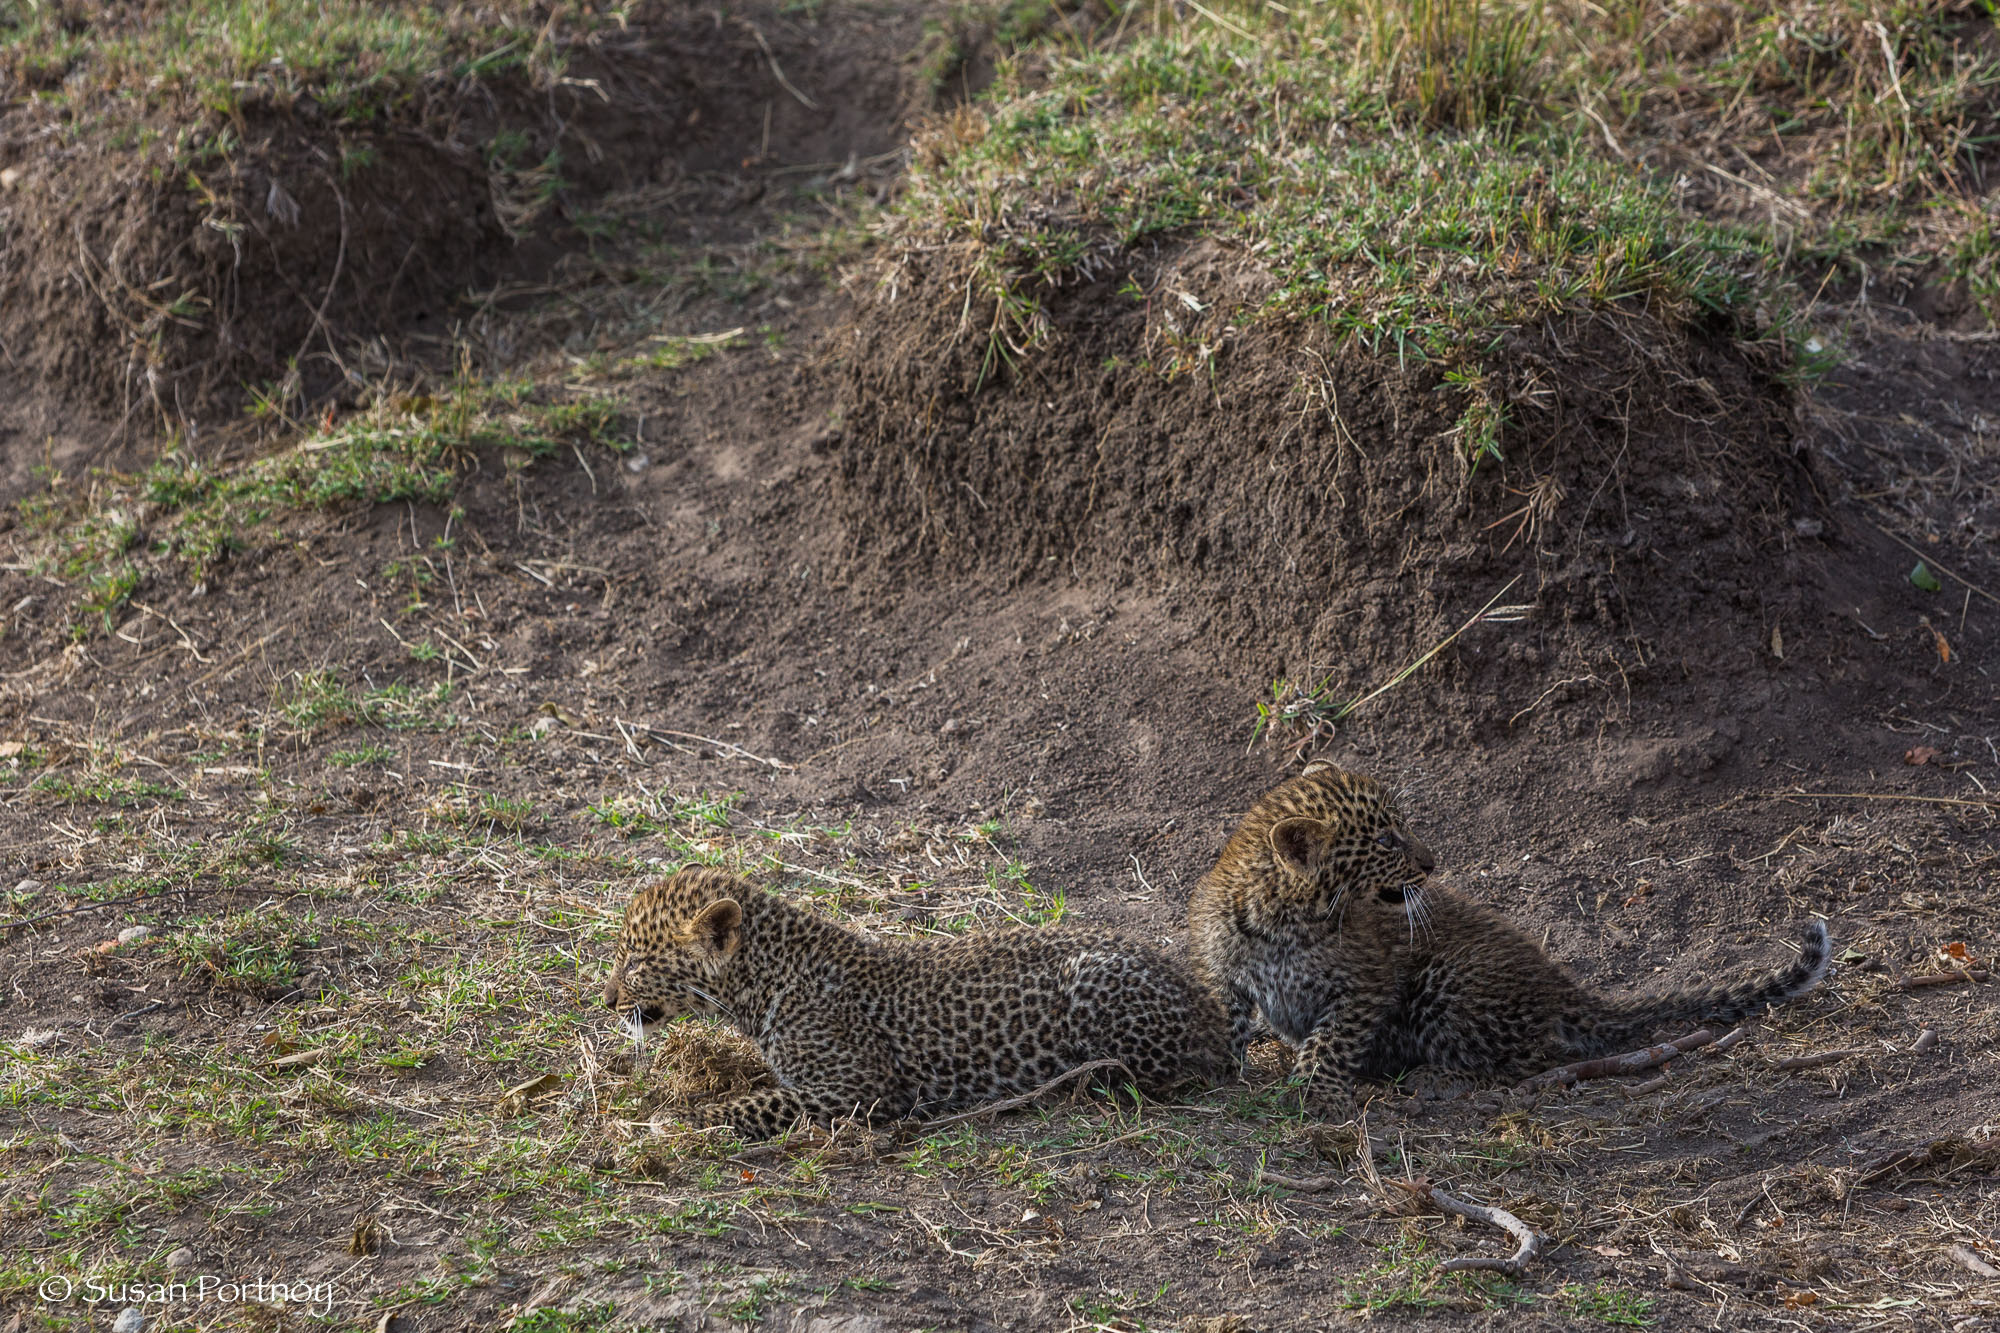 The cubs afraid of our vehicles, cower in a gully